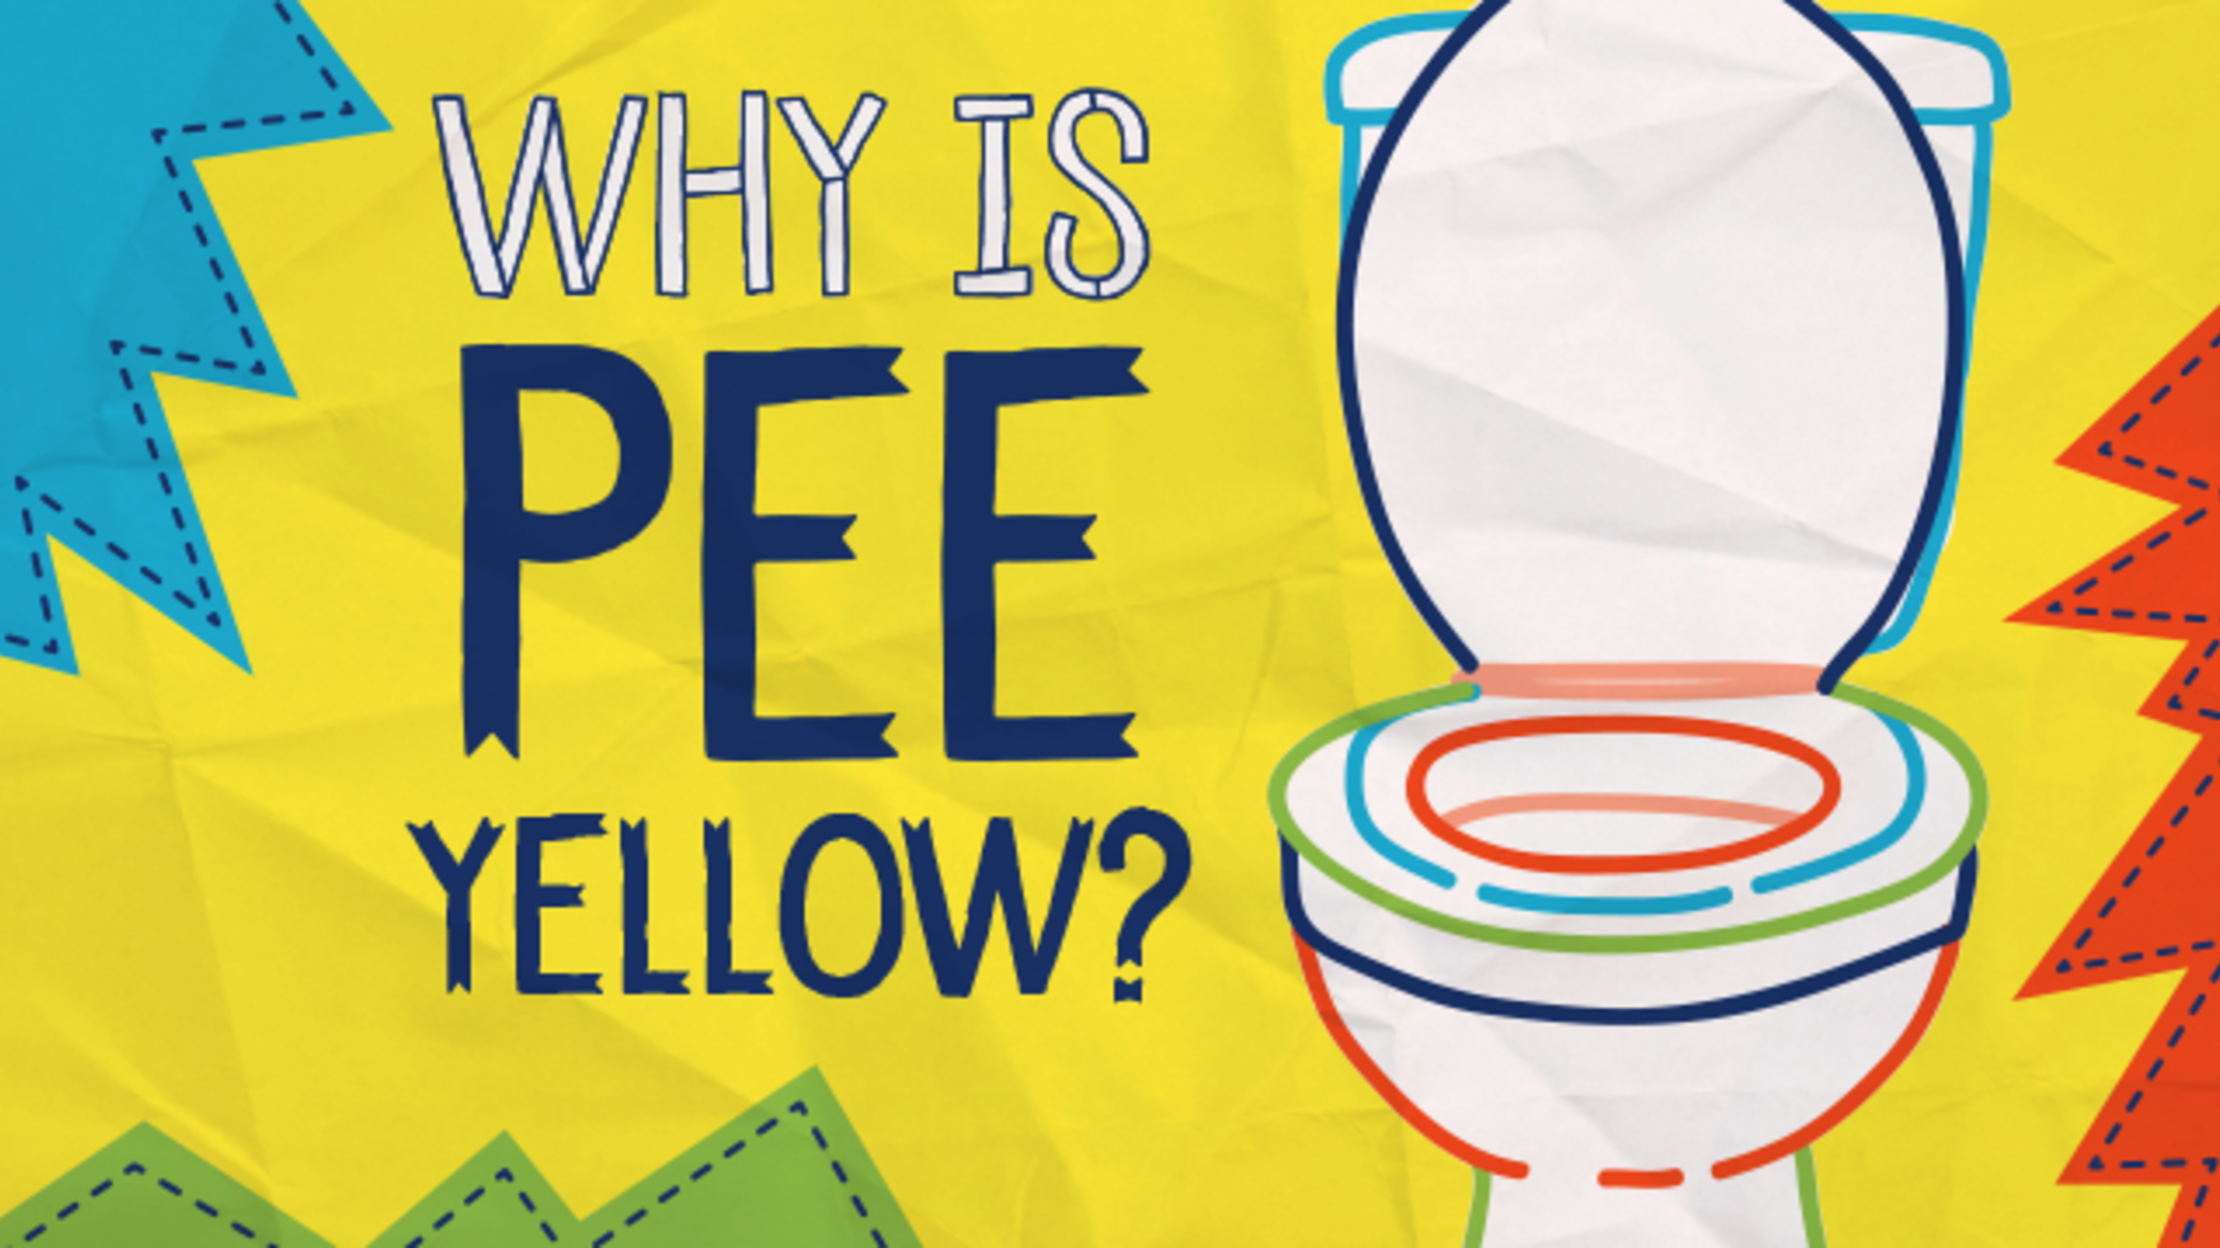 Why Is Pee Yellow?